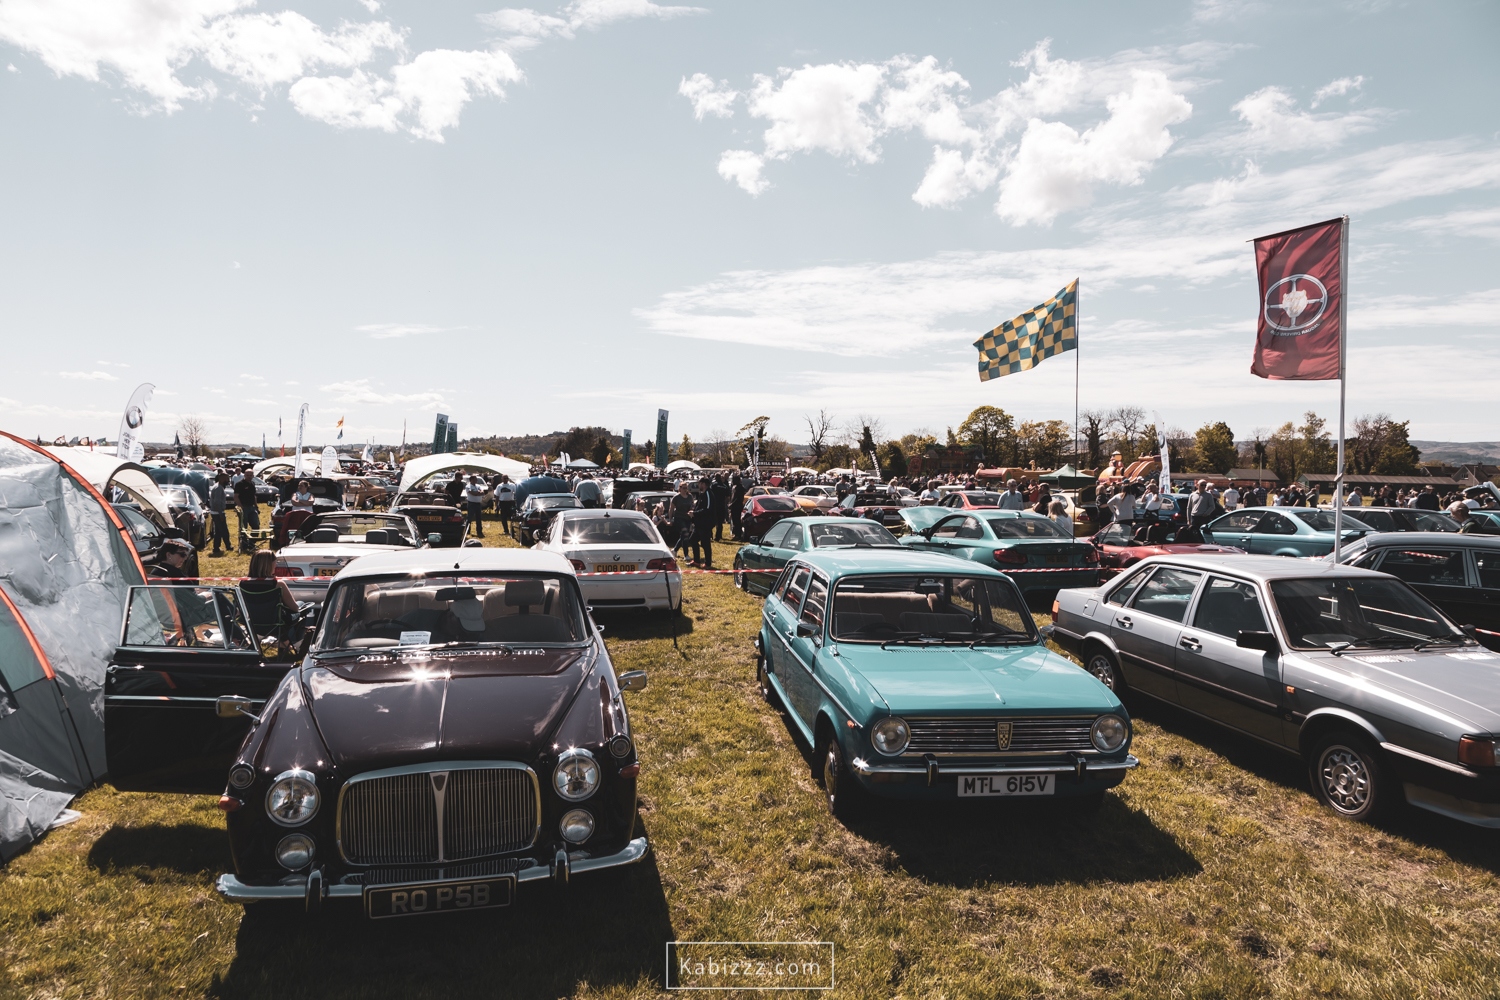 Kabizzz_Photography_Stirling_District_Classic _cars-135.jpg